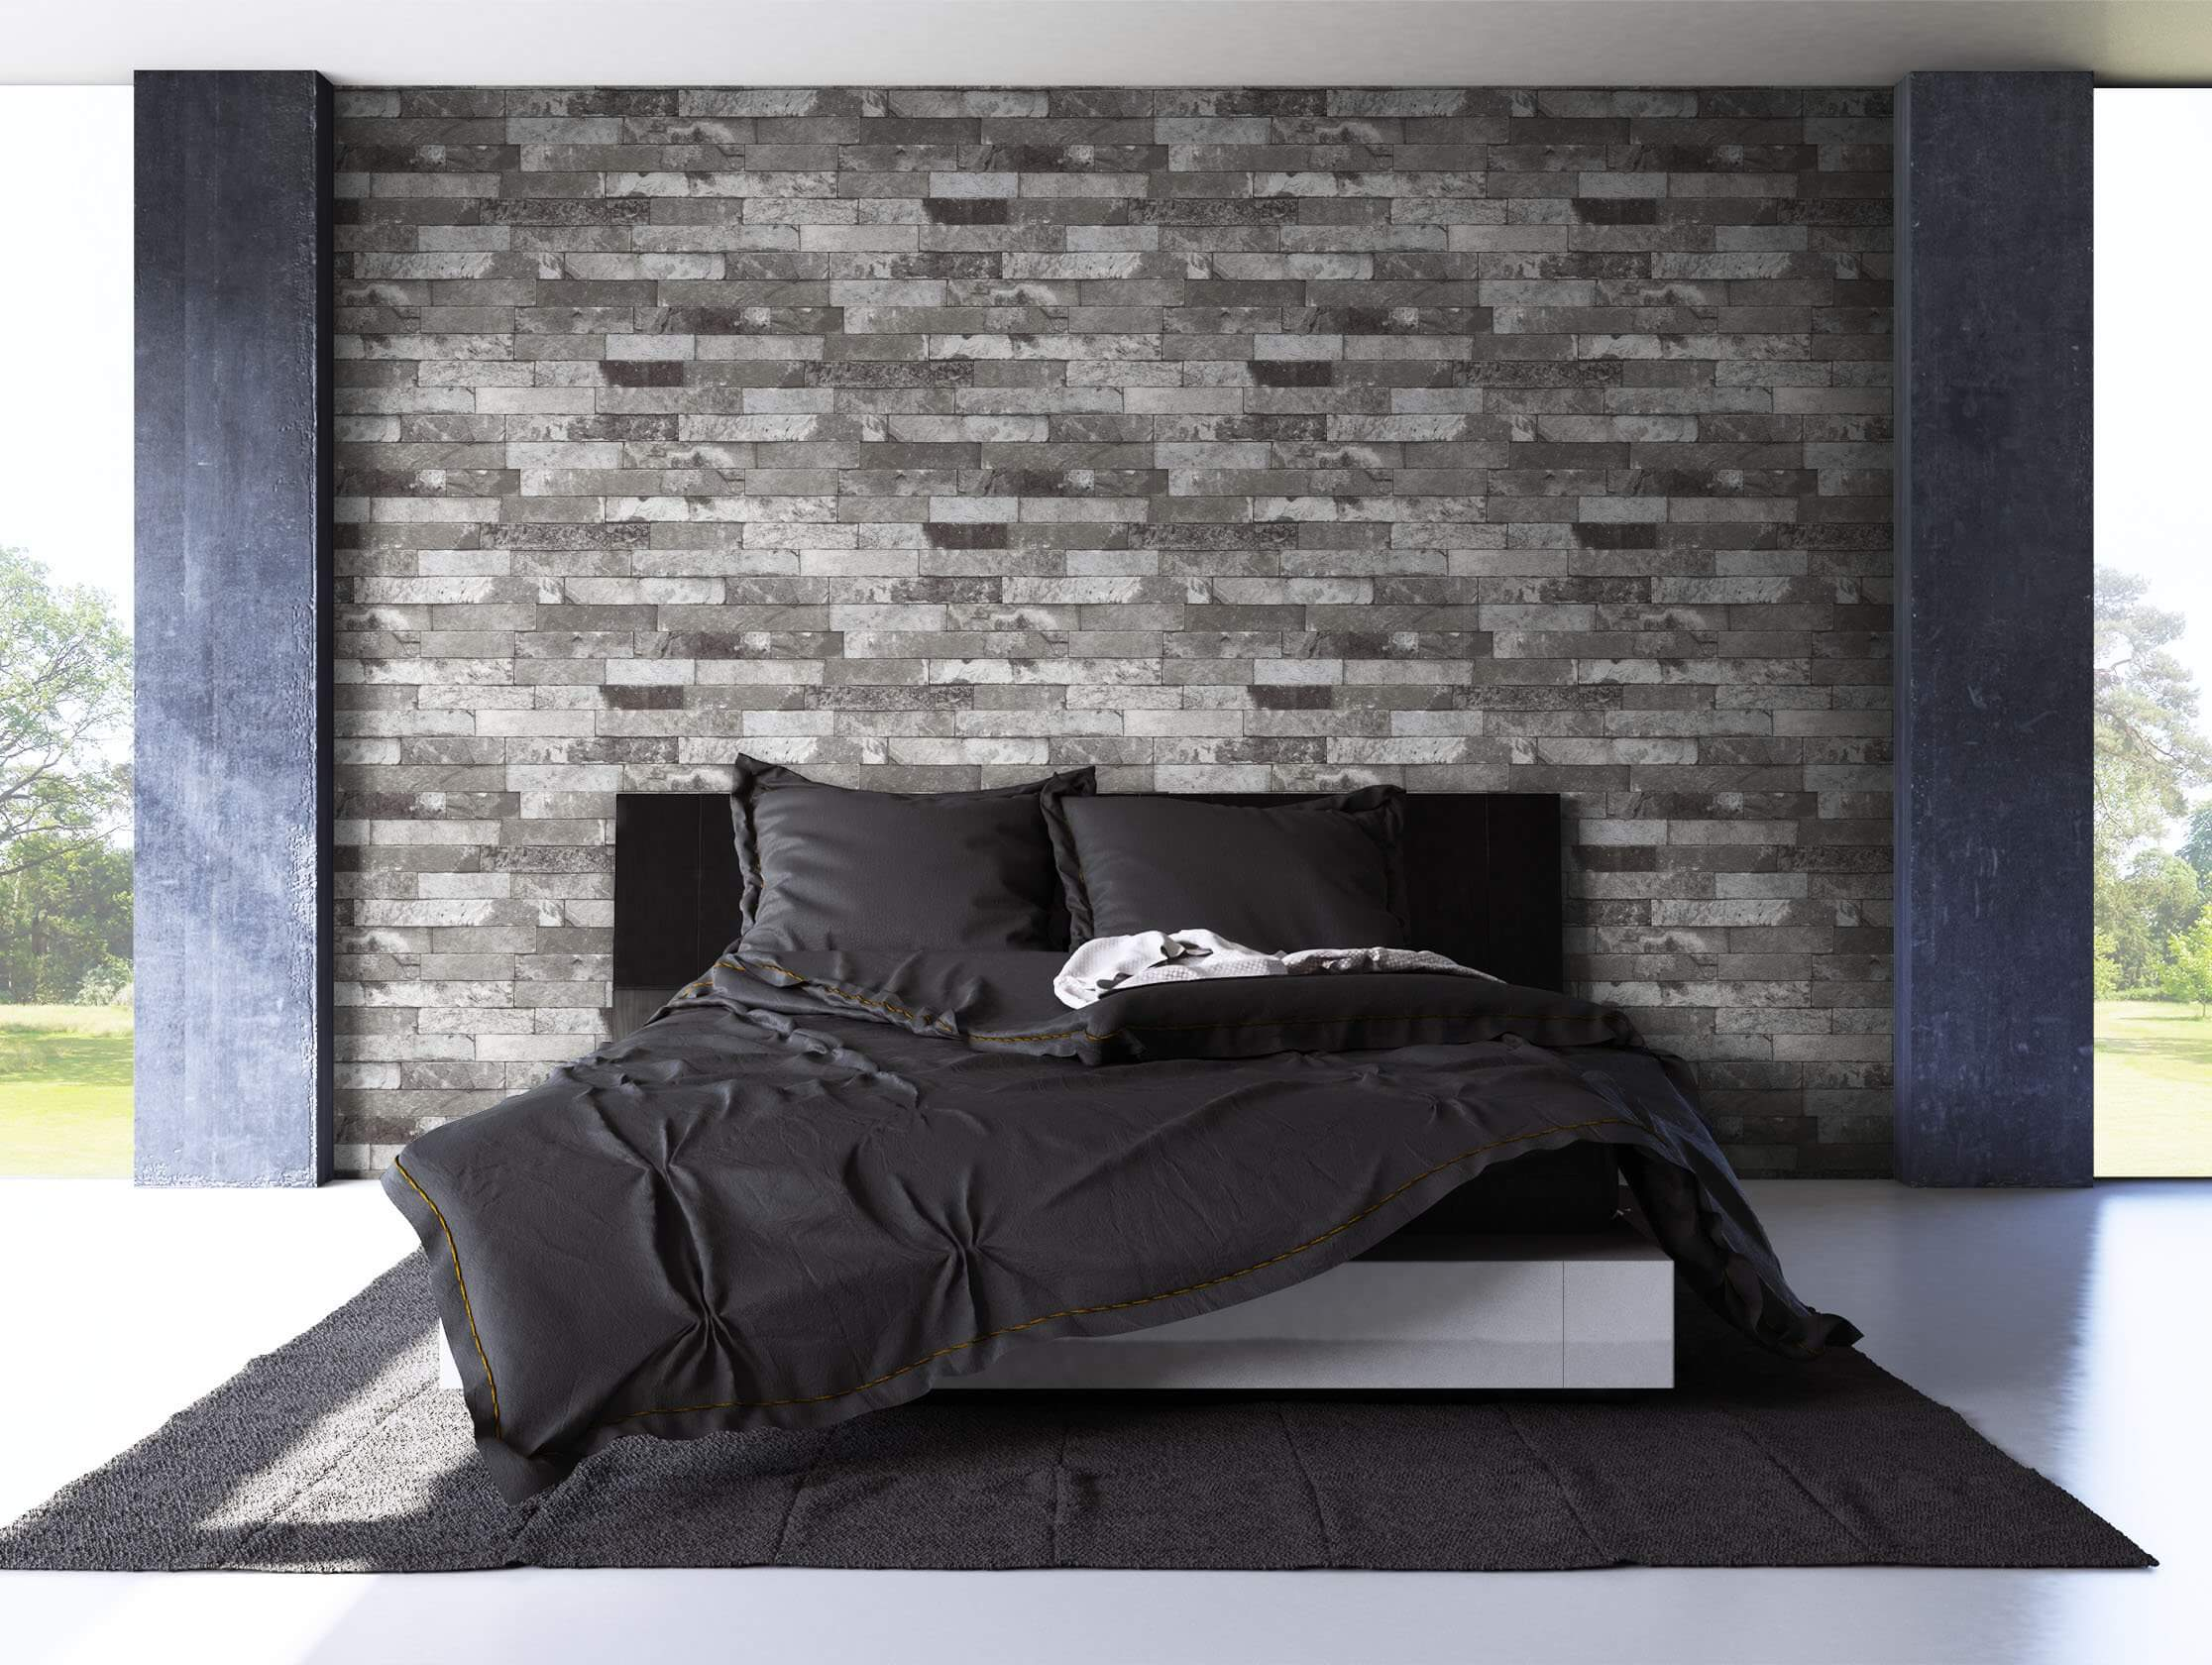 vliestapete anthrazit modern mauer stein wohnen schlafen diele newroom. Black Bedroom Furniture Sets. Home Design Ideas